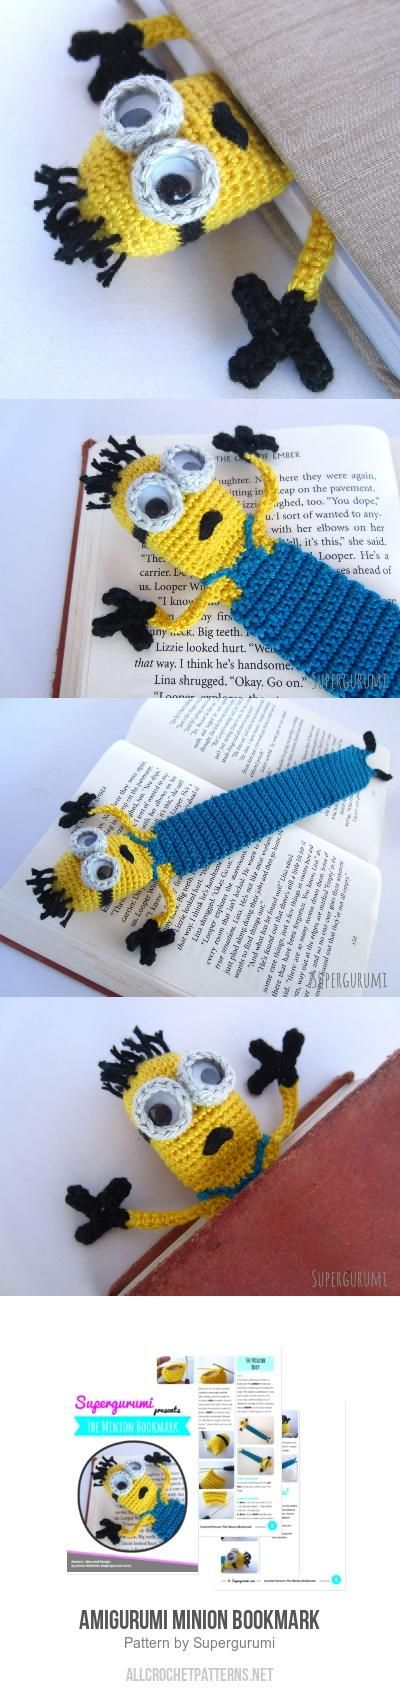 Amigurumi Minion Bookmark Crochet Pattern for purchase